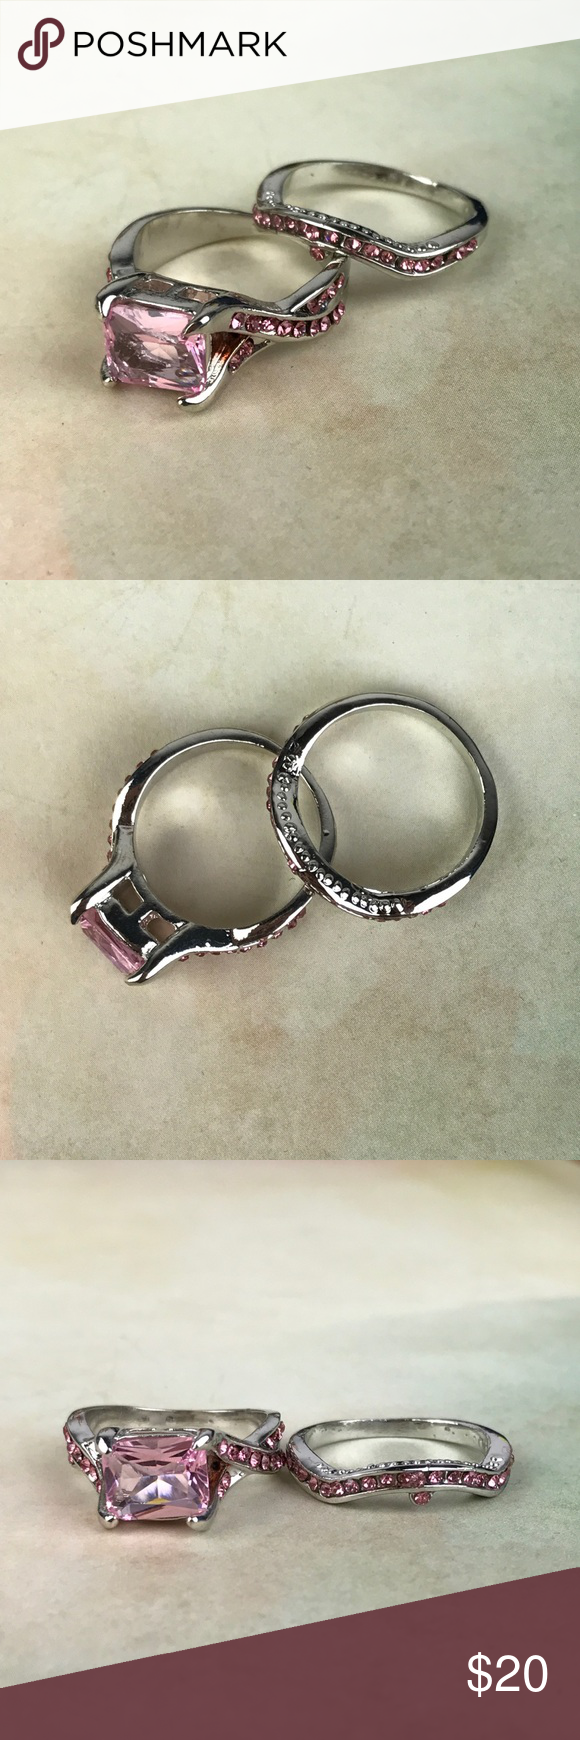 Pink Silver ring Size 7 It is New Without Tags. Thank you